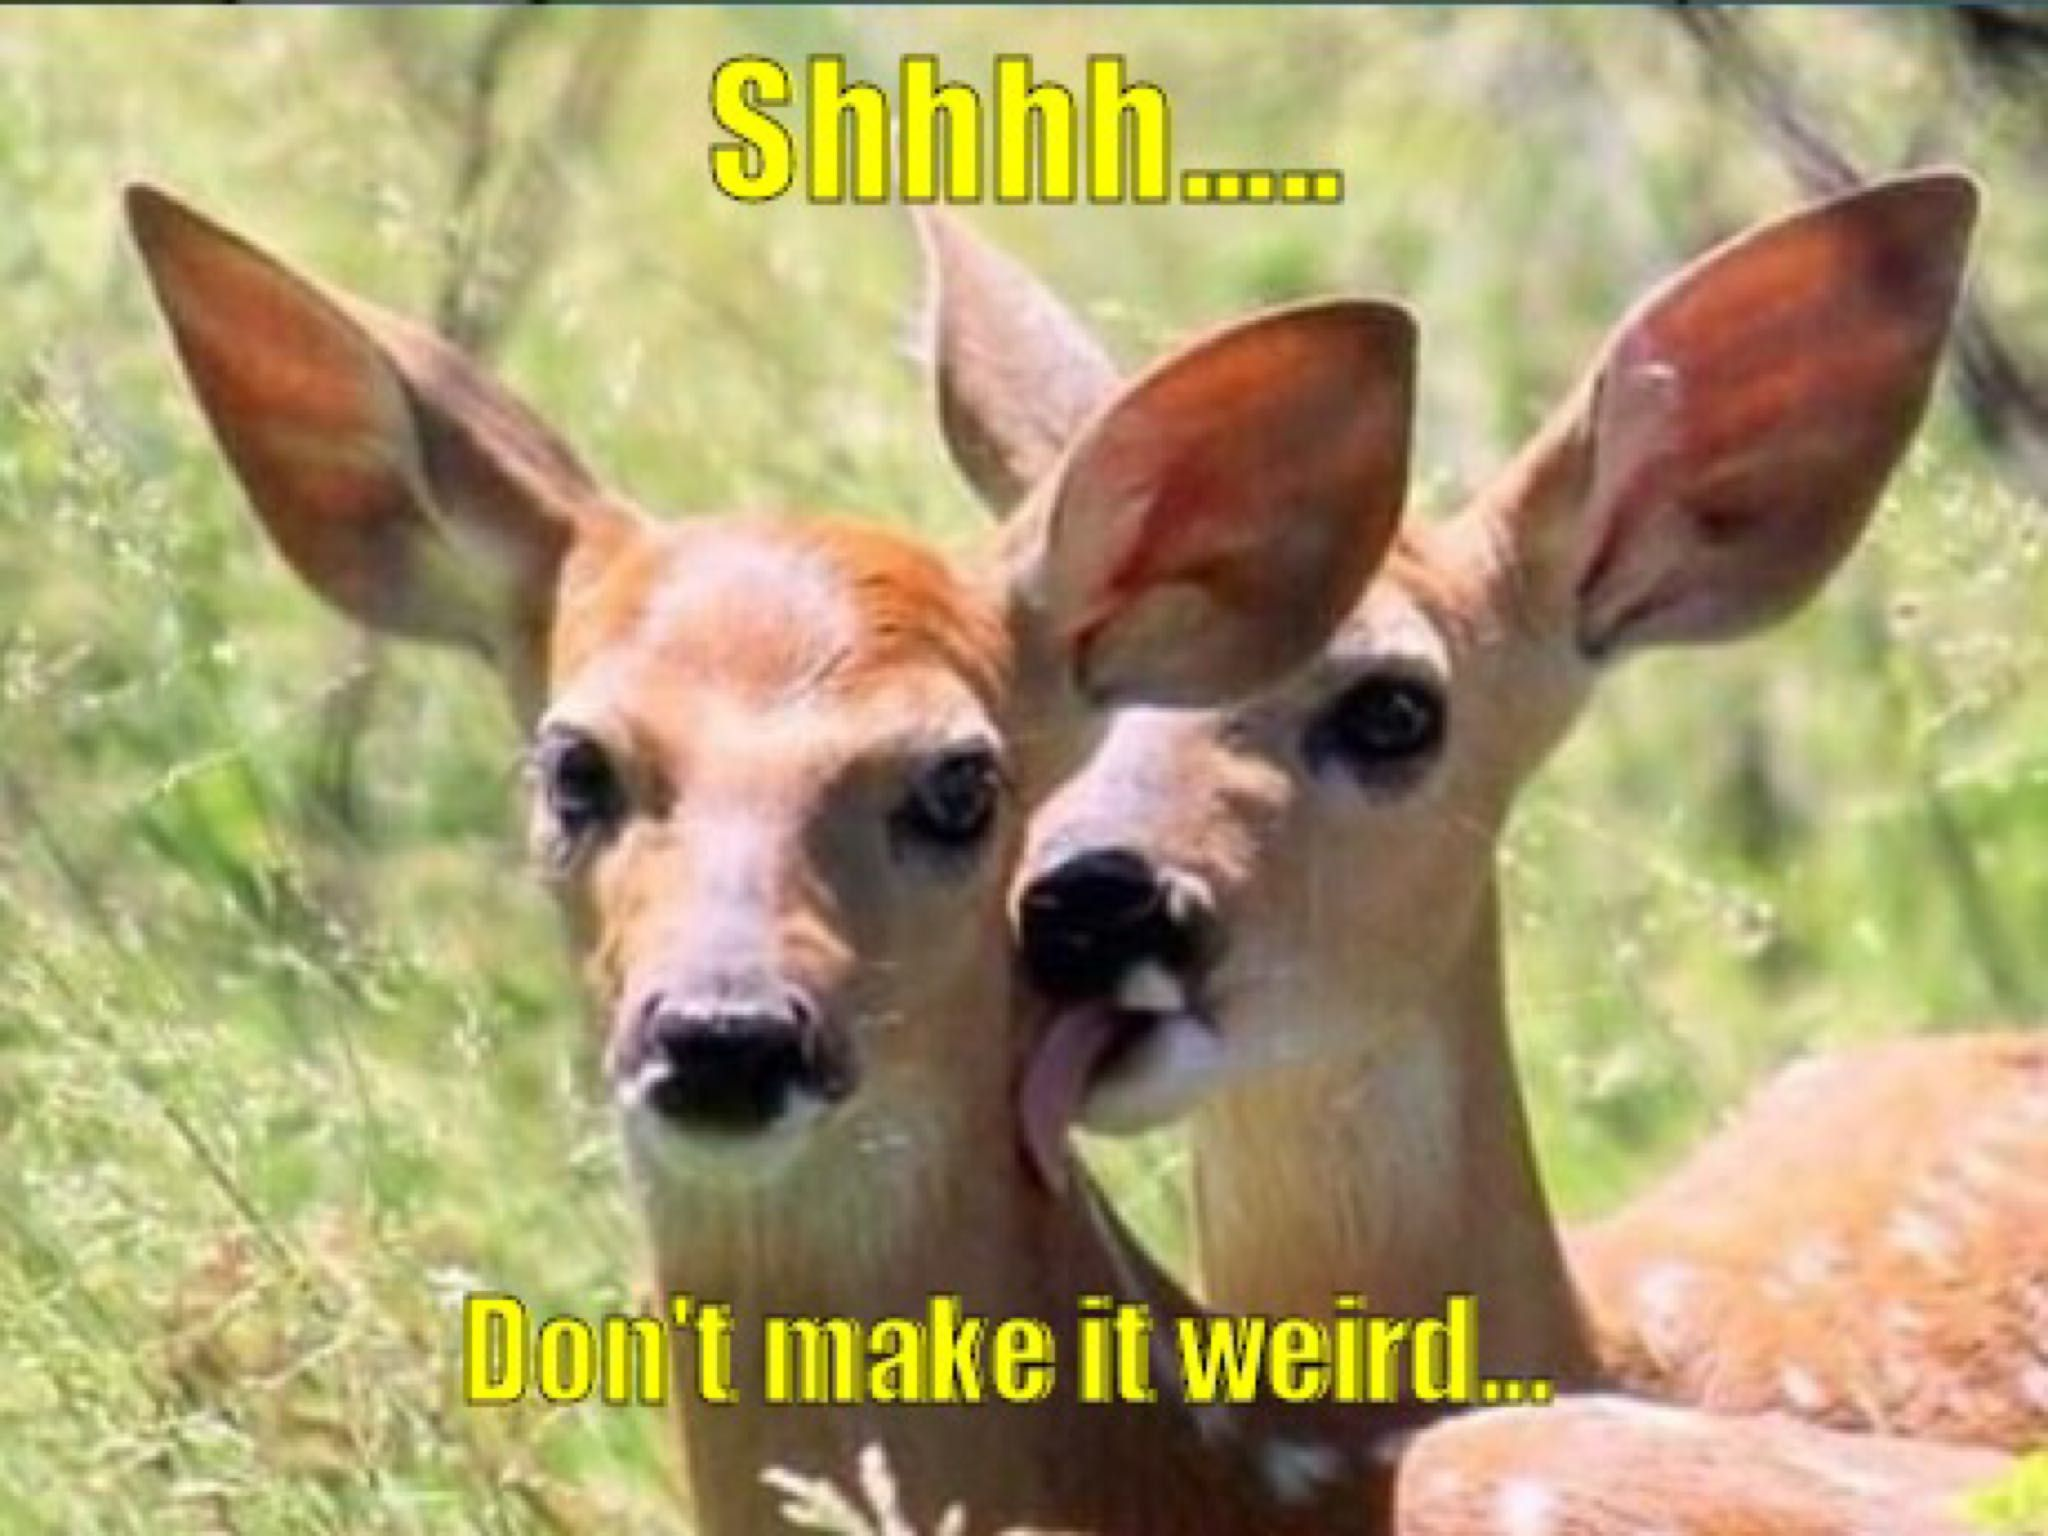 Hush now... #funny #funnyPicture #FunnyText #funnyVideo #funnyPost #funnyQuotes #FunnyStuff #FunnyAnimals #funnyJokes #FunnyThings #FunnyDogs #FunnyCats #FunnyKids #FunnyPeople #Funnypranks